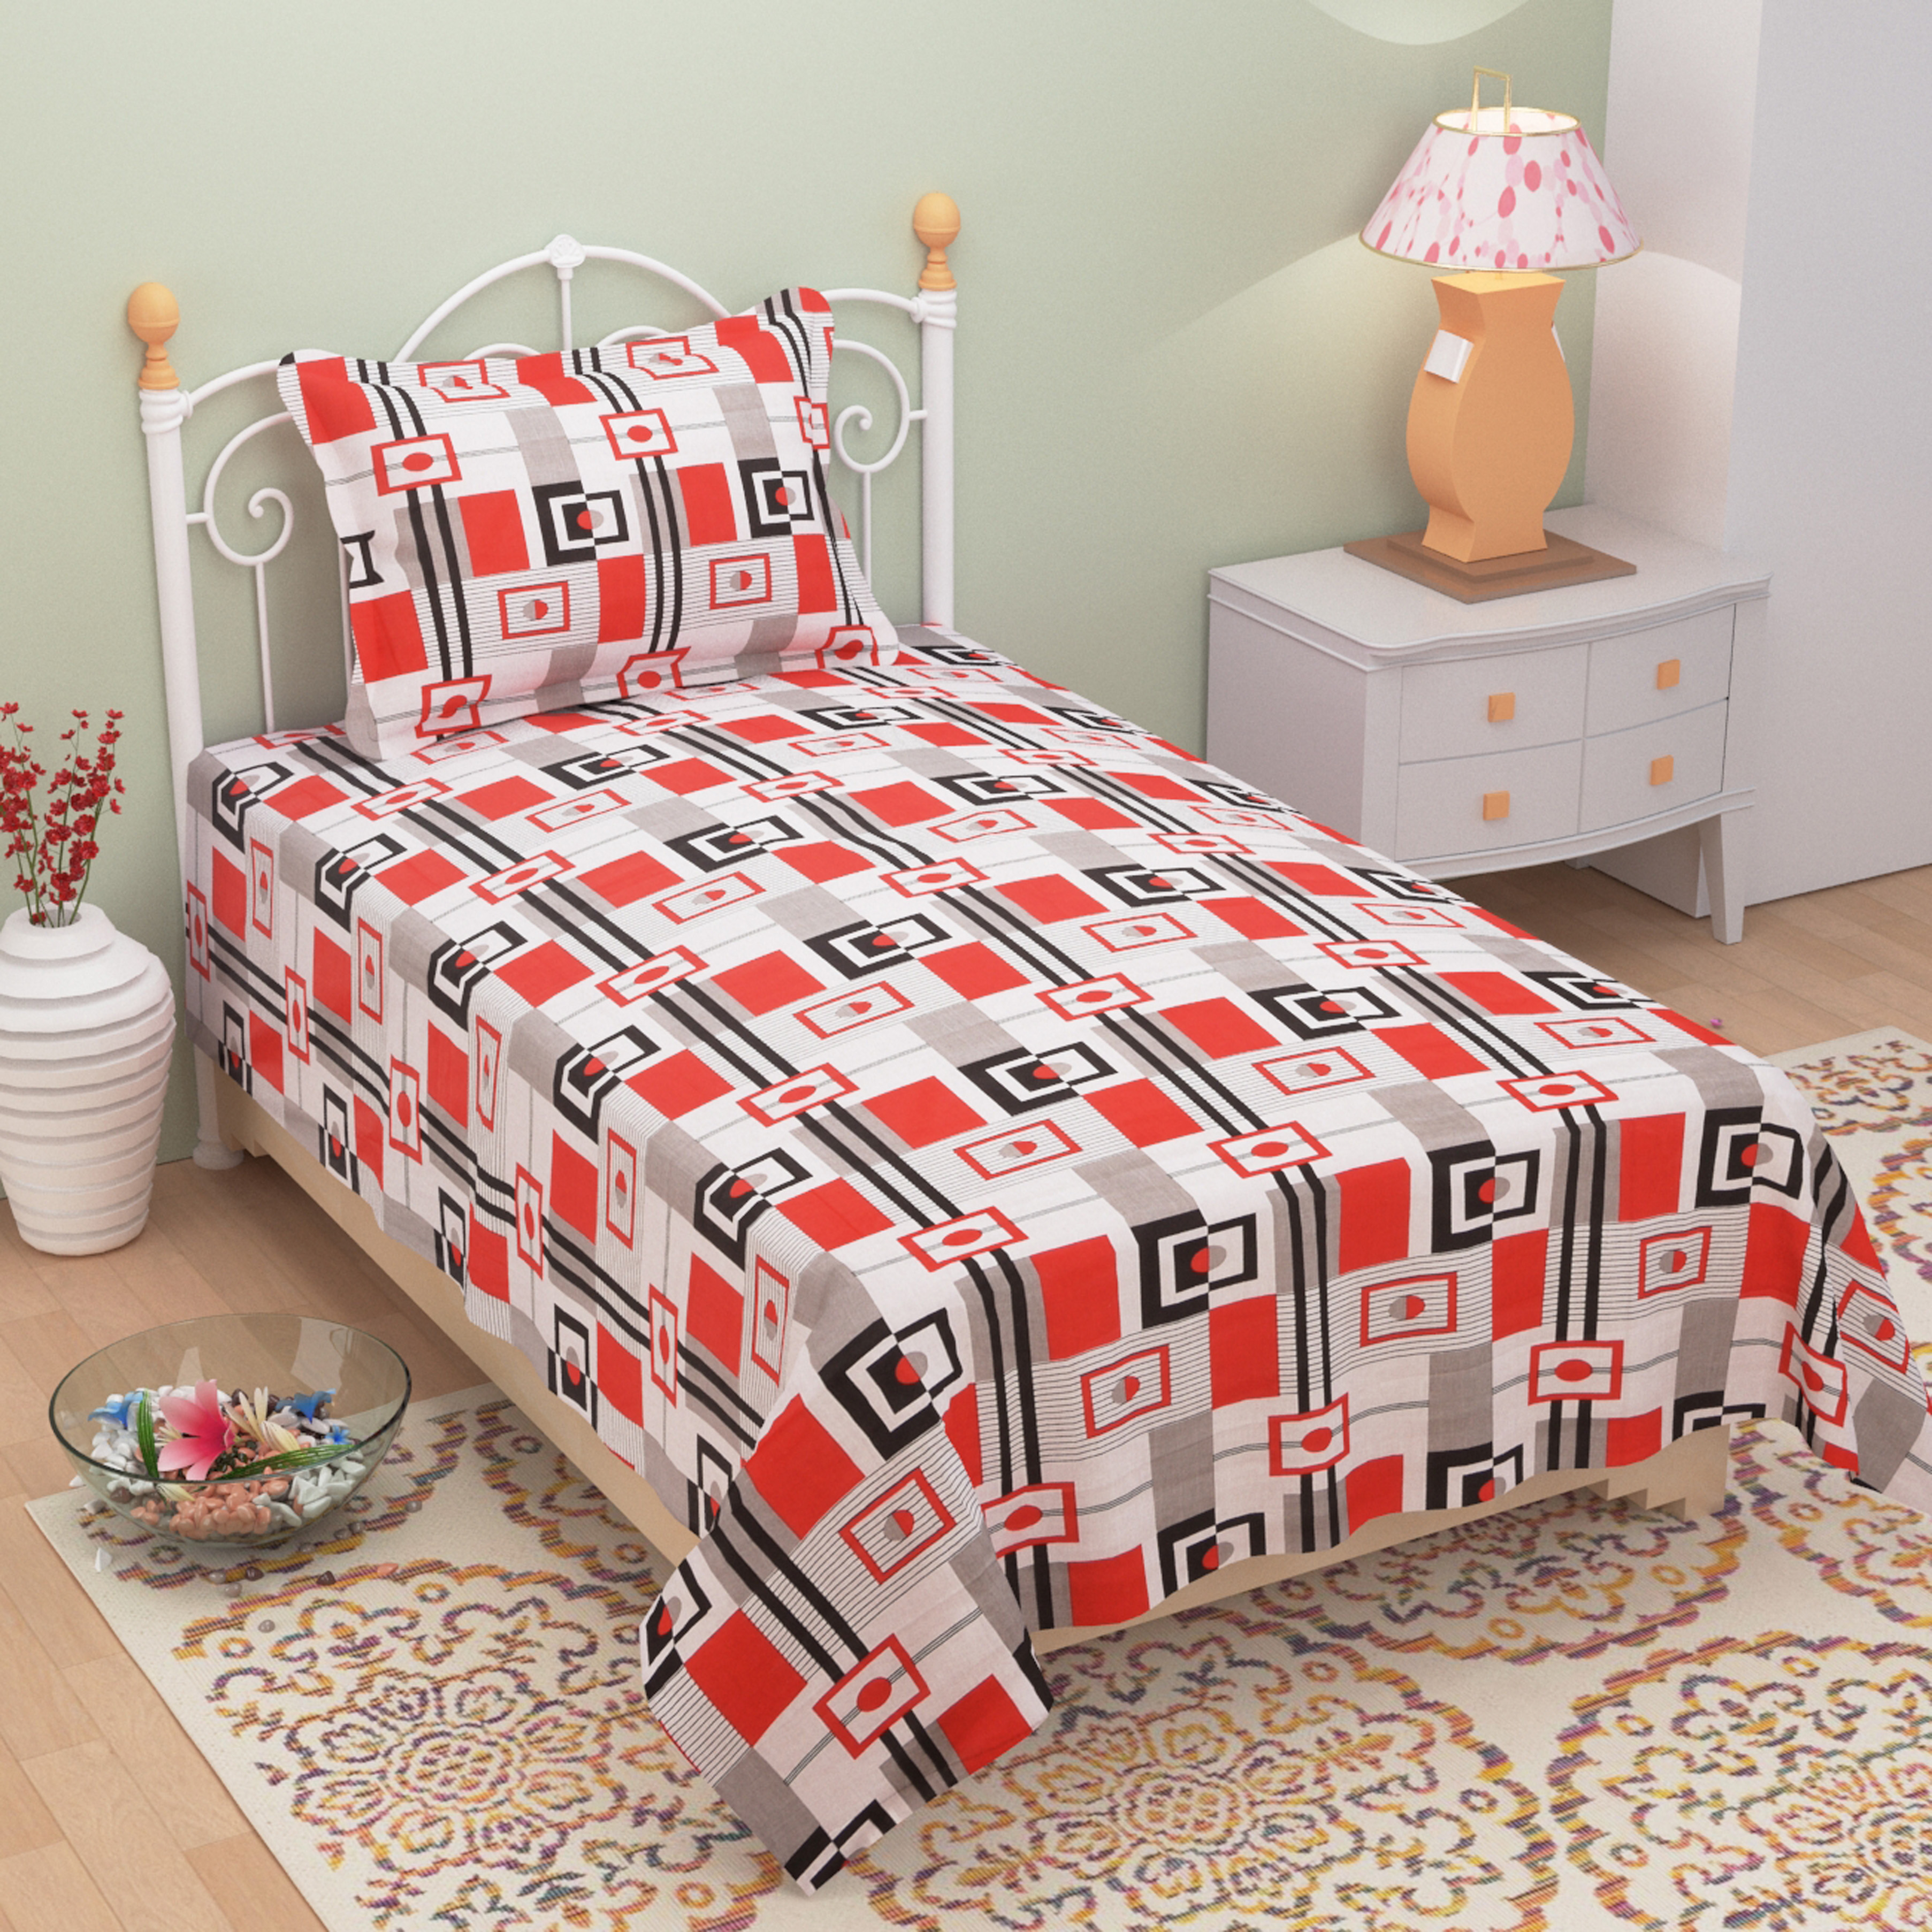 Homefab India 140 TC Cotton Single Bedsheet with 1 Pillow Cover - Geometrical Pattern (Single180)